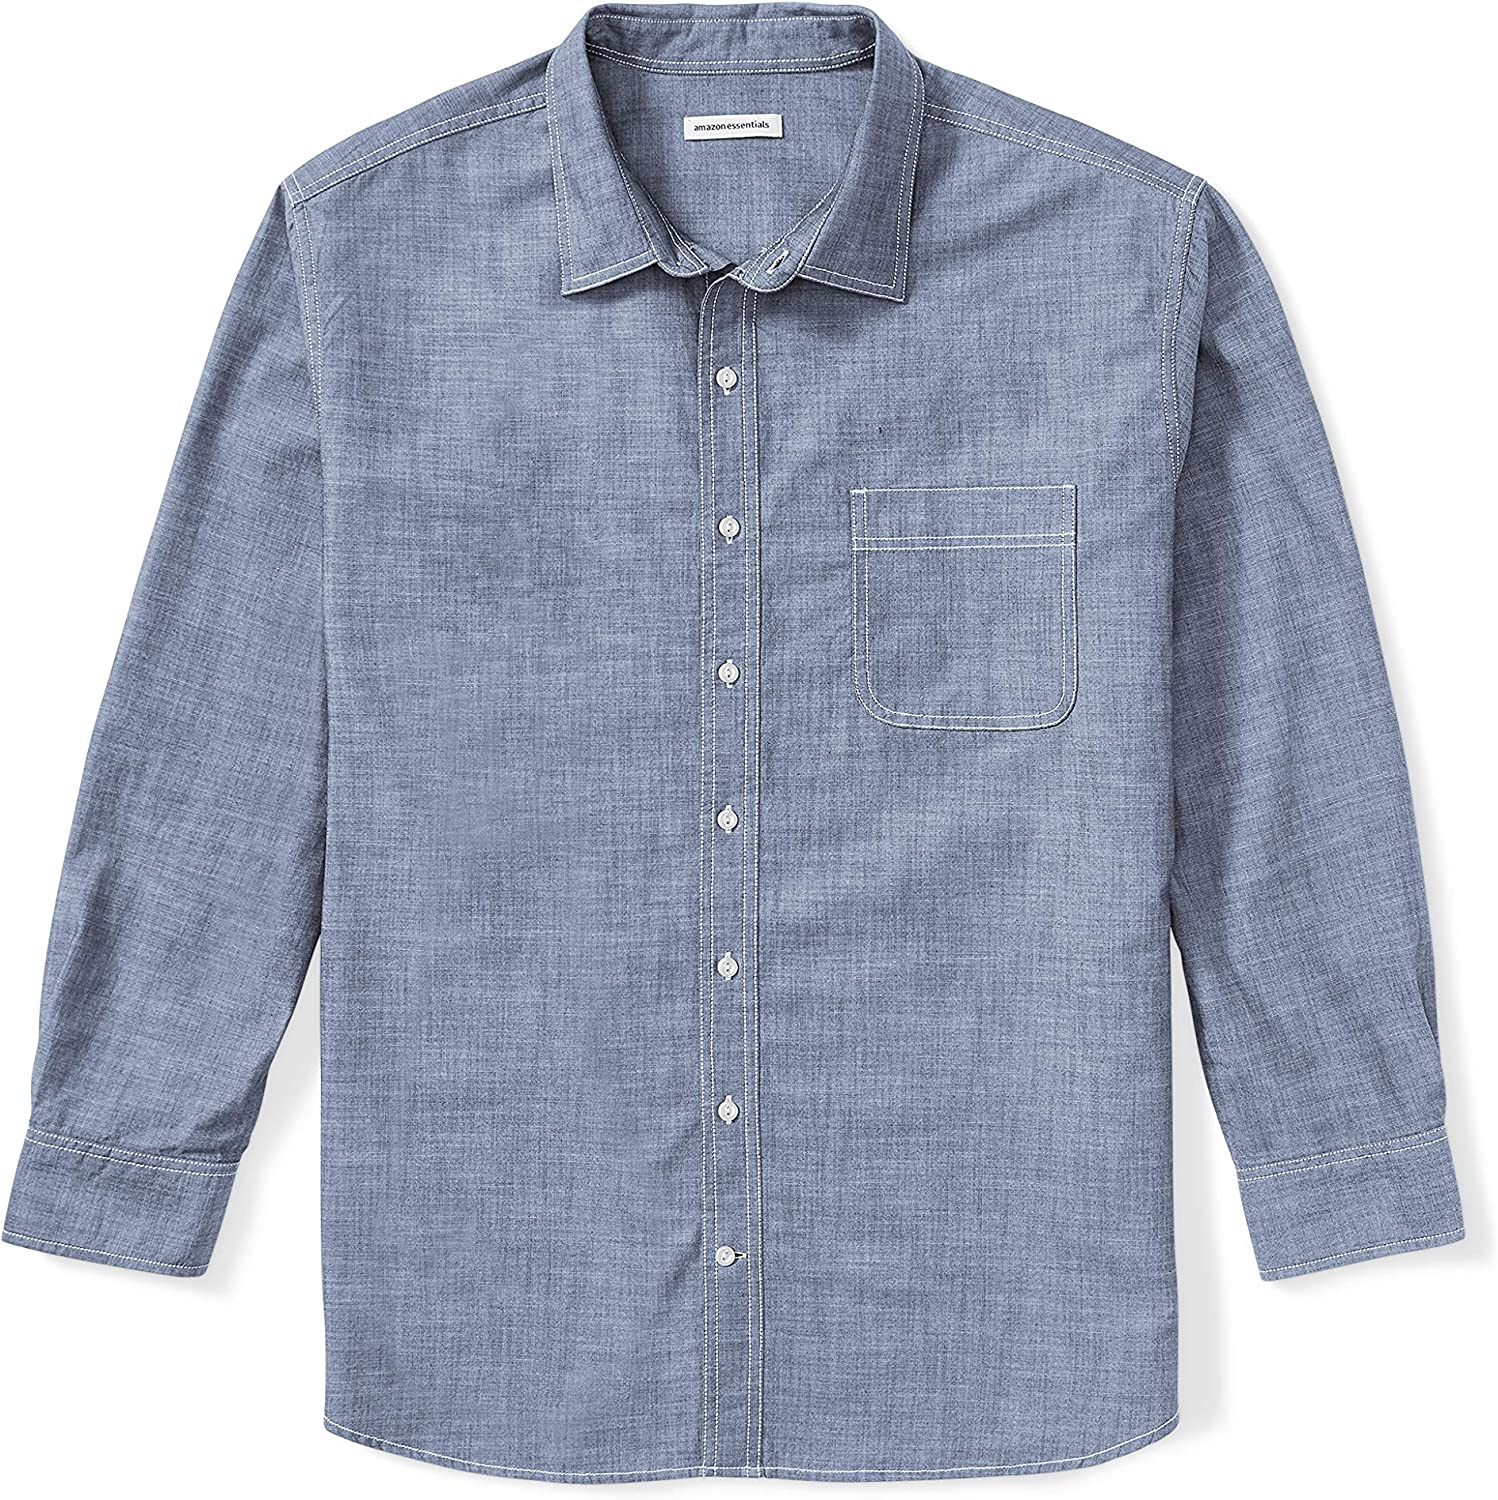 Amazon Essentials Men's Big & Tall Long-Sleeve Chambray Shirt fit by DXL